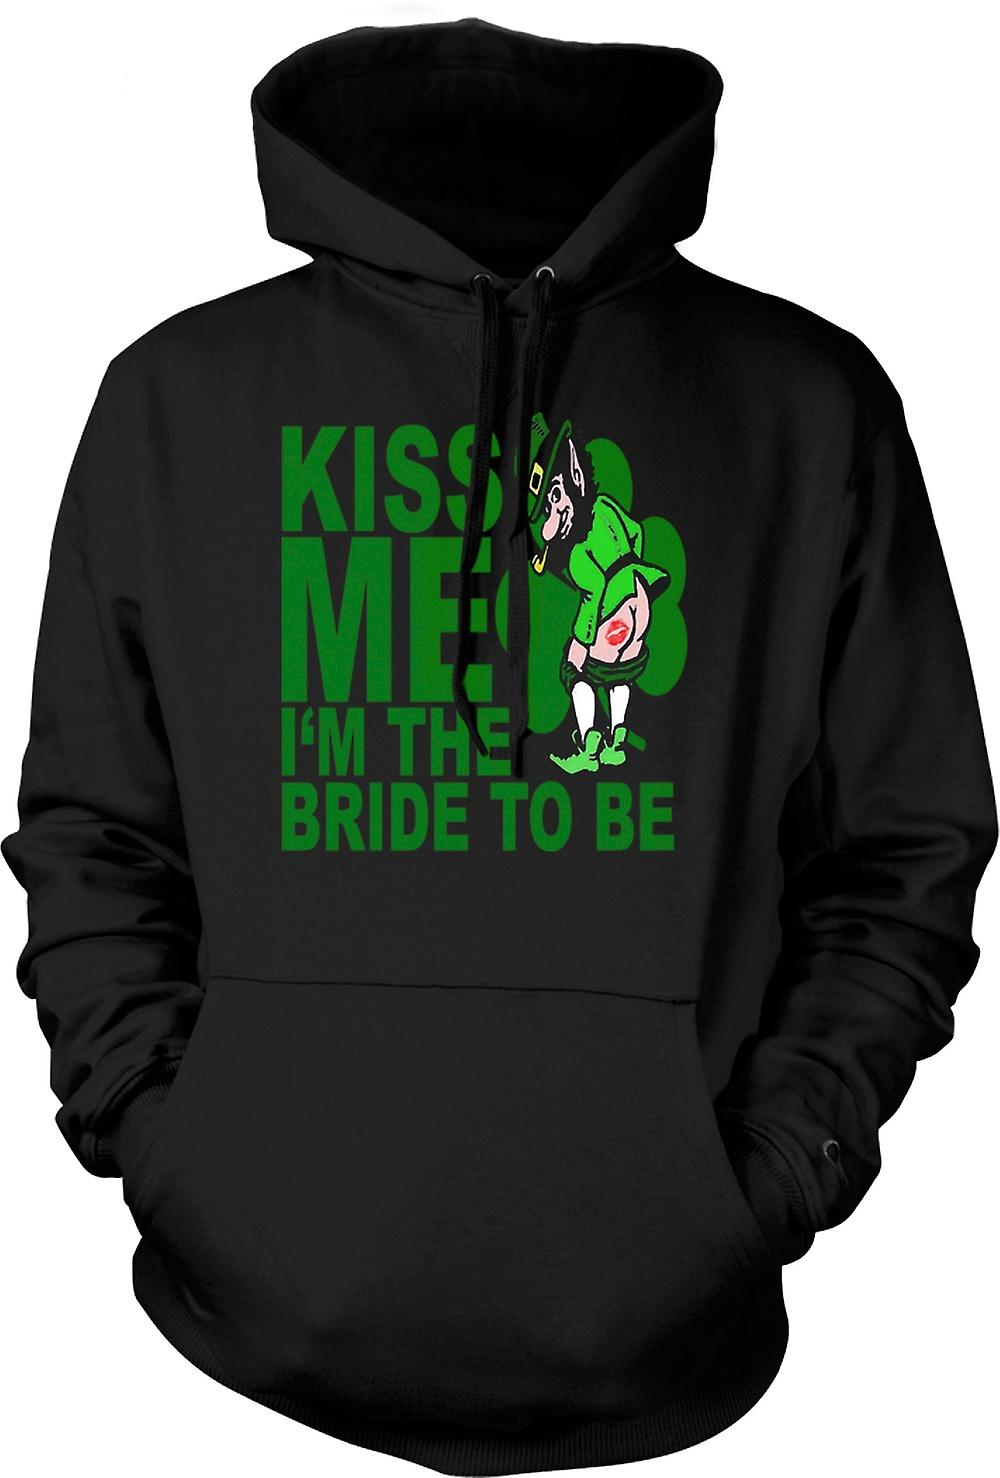 Kids Hoodie - St Patricks Day Irish Kiss Me - Funny